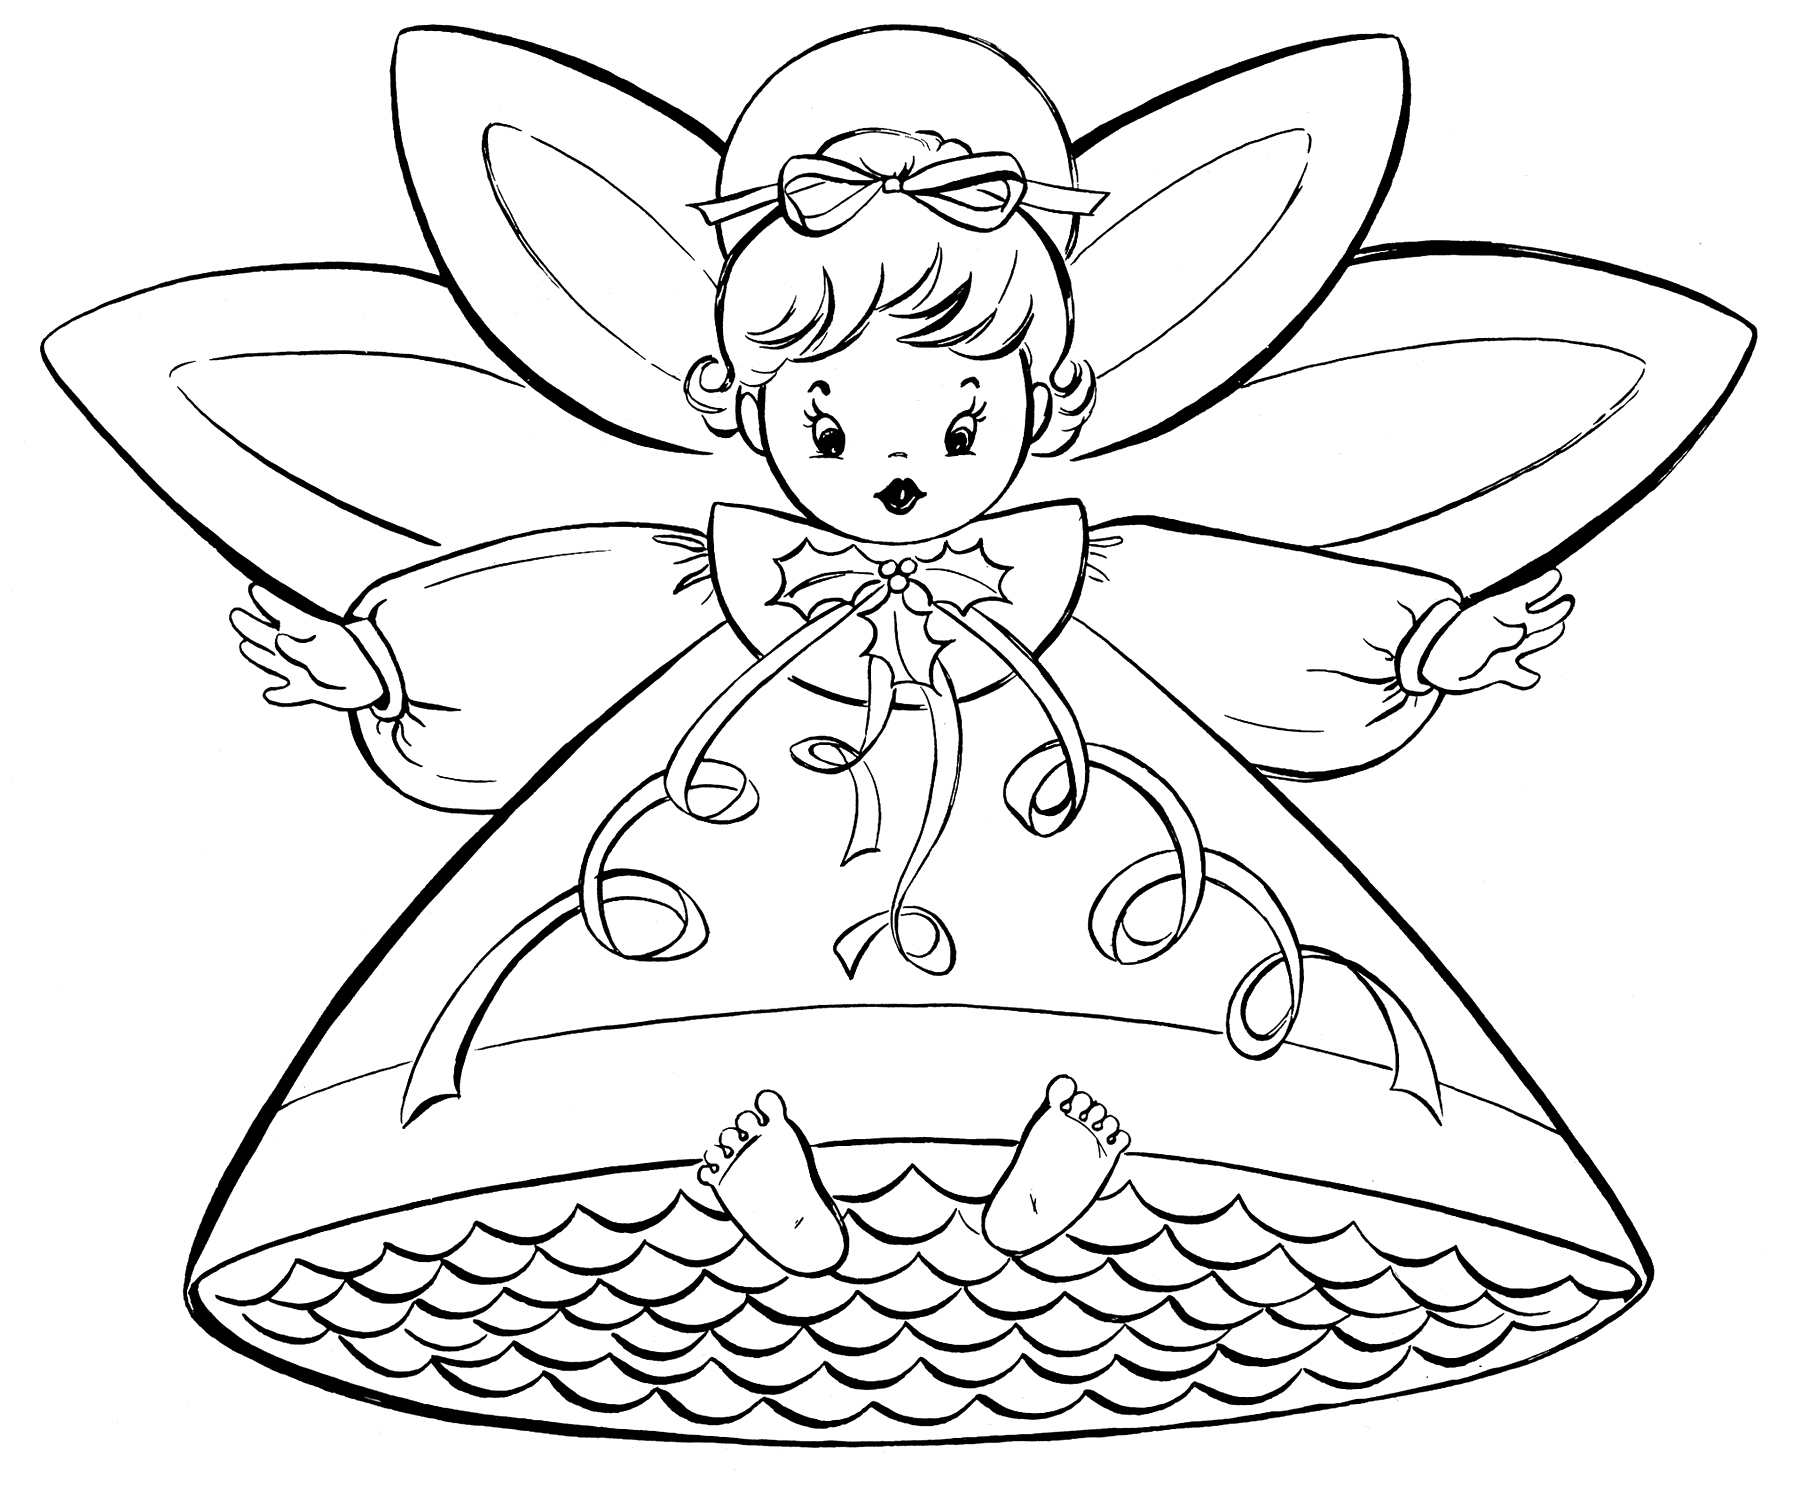 Christmas Coloring In Pictures To Print With Free Pages Retro Angels The Graphics Fairy